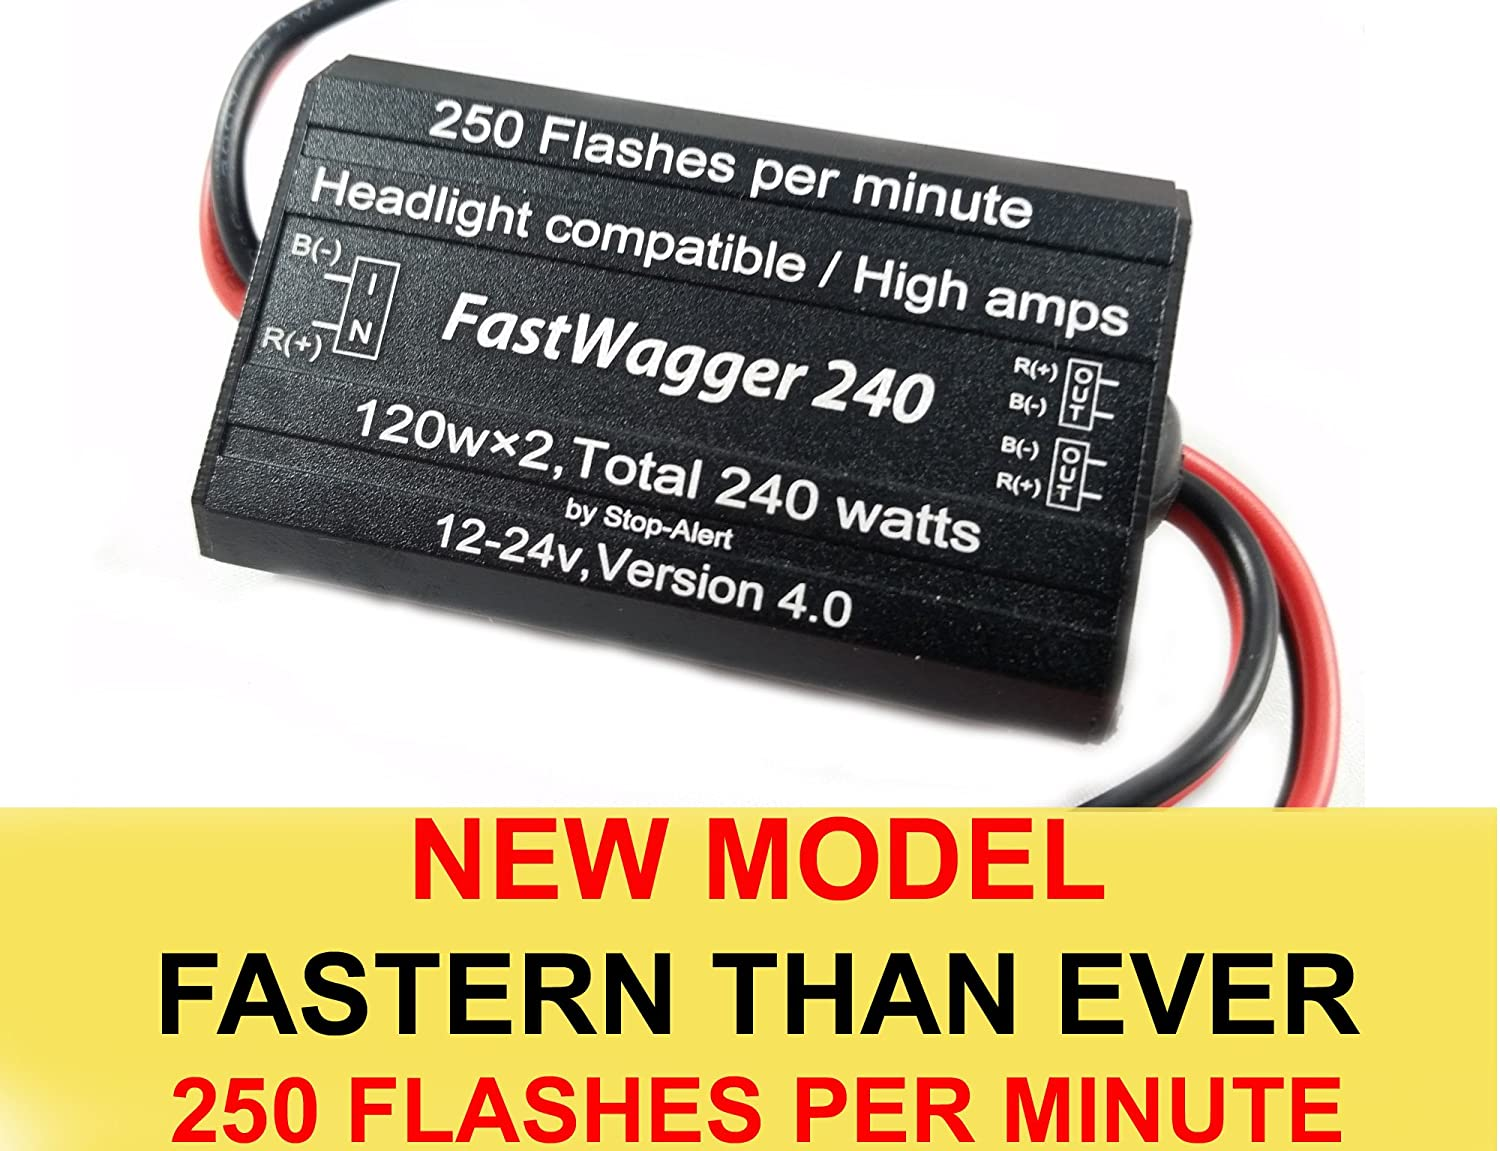 Stop-Alert WigWagger 240 HEADLIGHT Wig Wag Alternating Flasher Electronic Relay LED Xenon Halogen HID Incandescent Emergency Police Ambulance Trucks 10 AMP 240W 12-24V 150 FPM